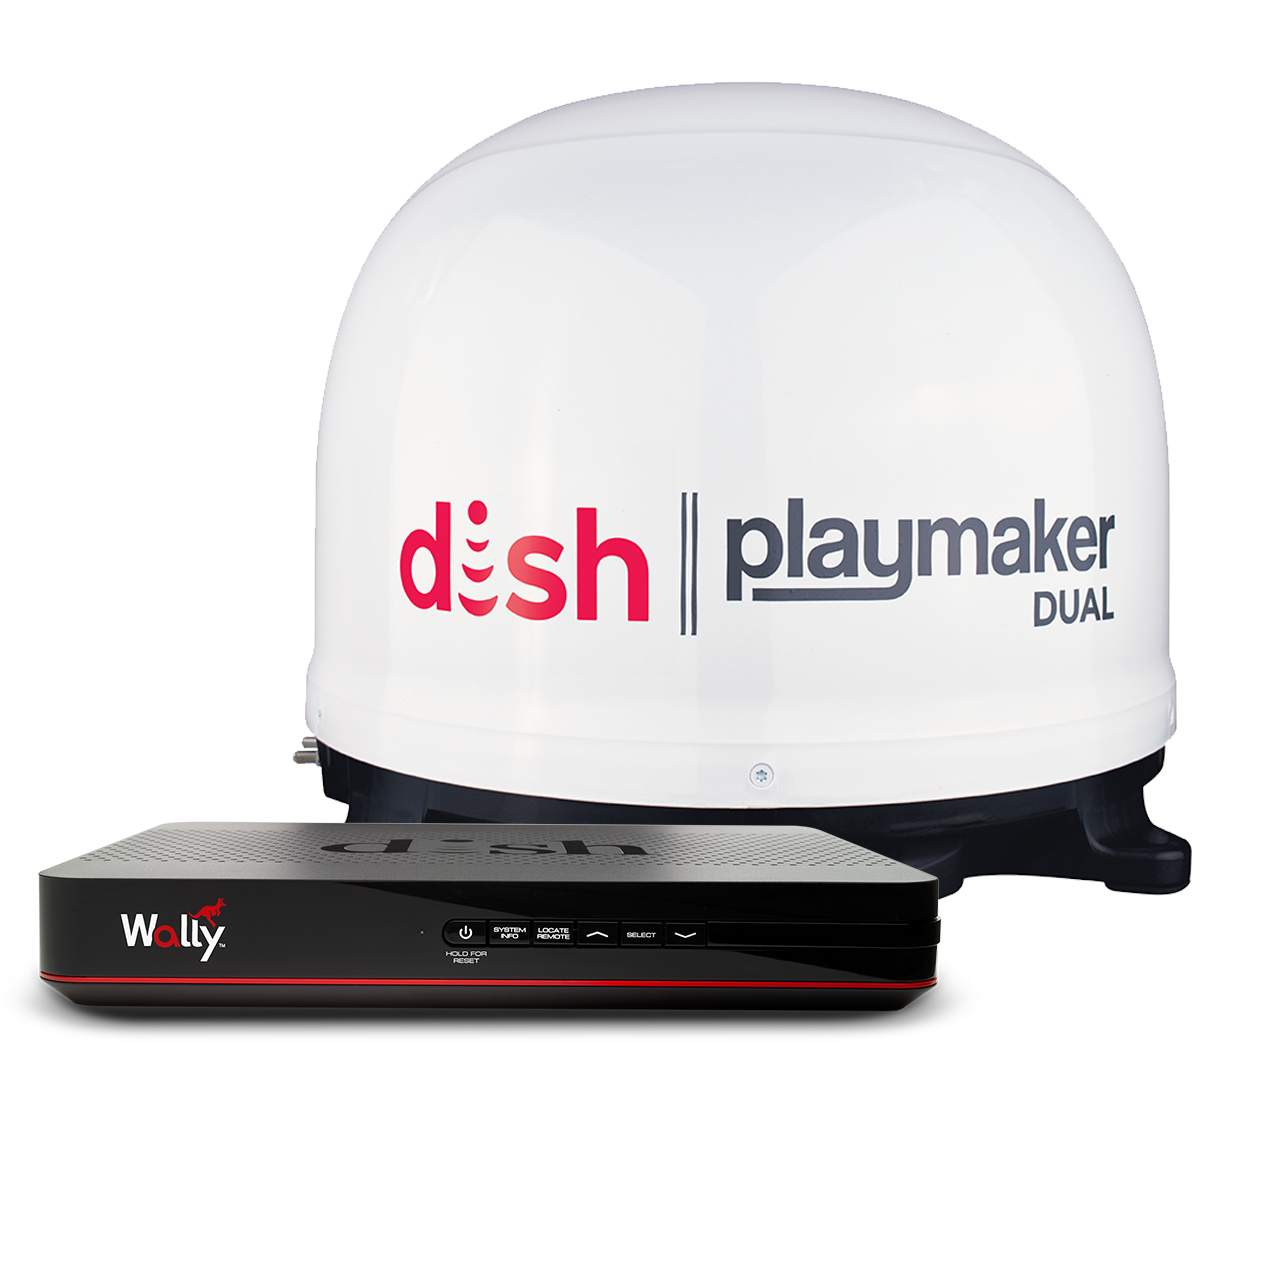 DISH Playmaker Dual Satellite Antenna Bundle with Wally - White